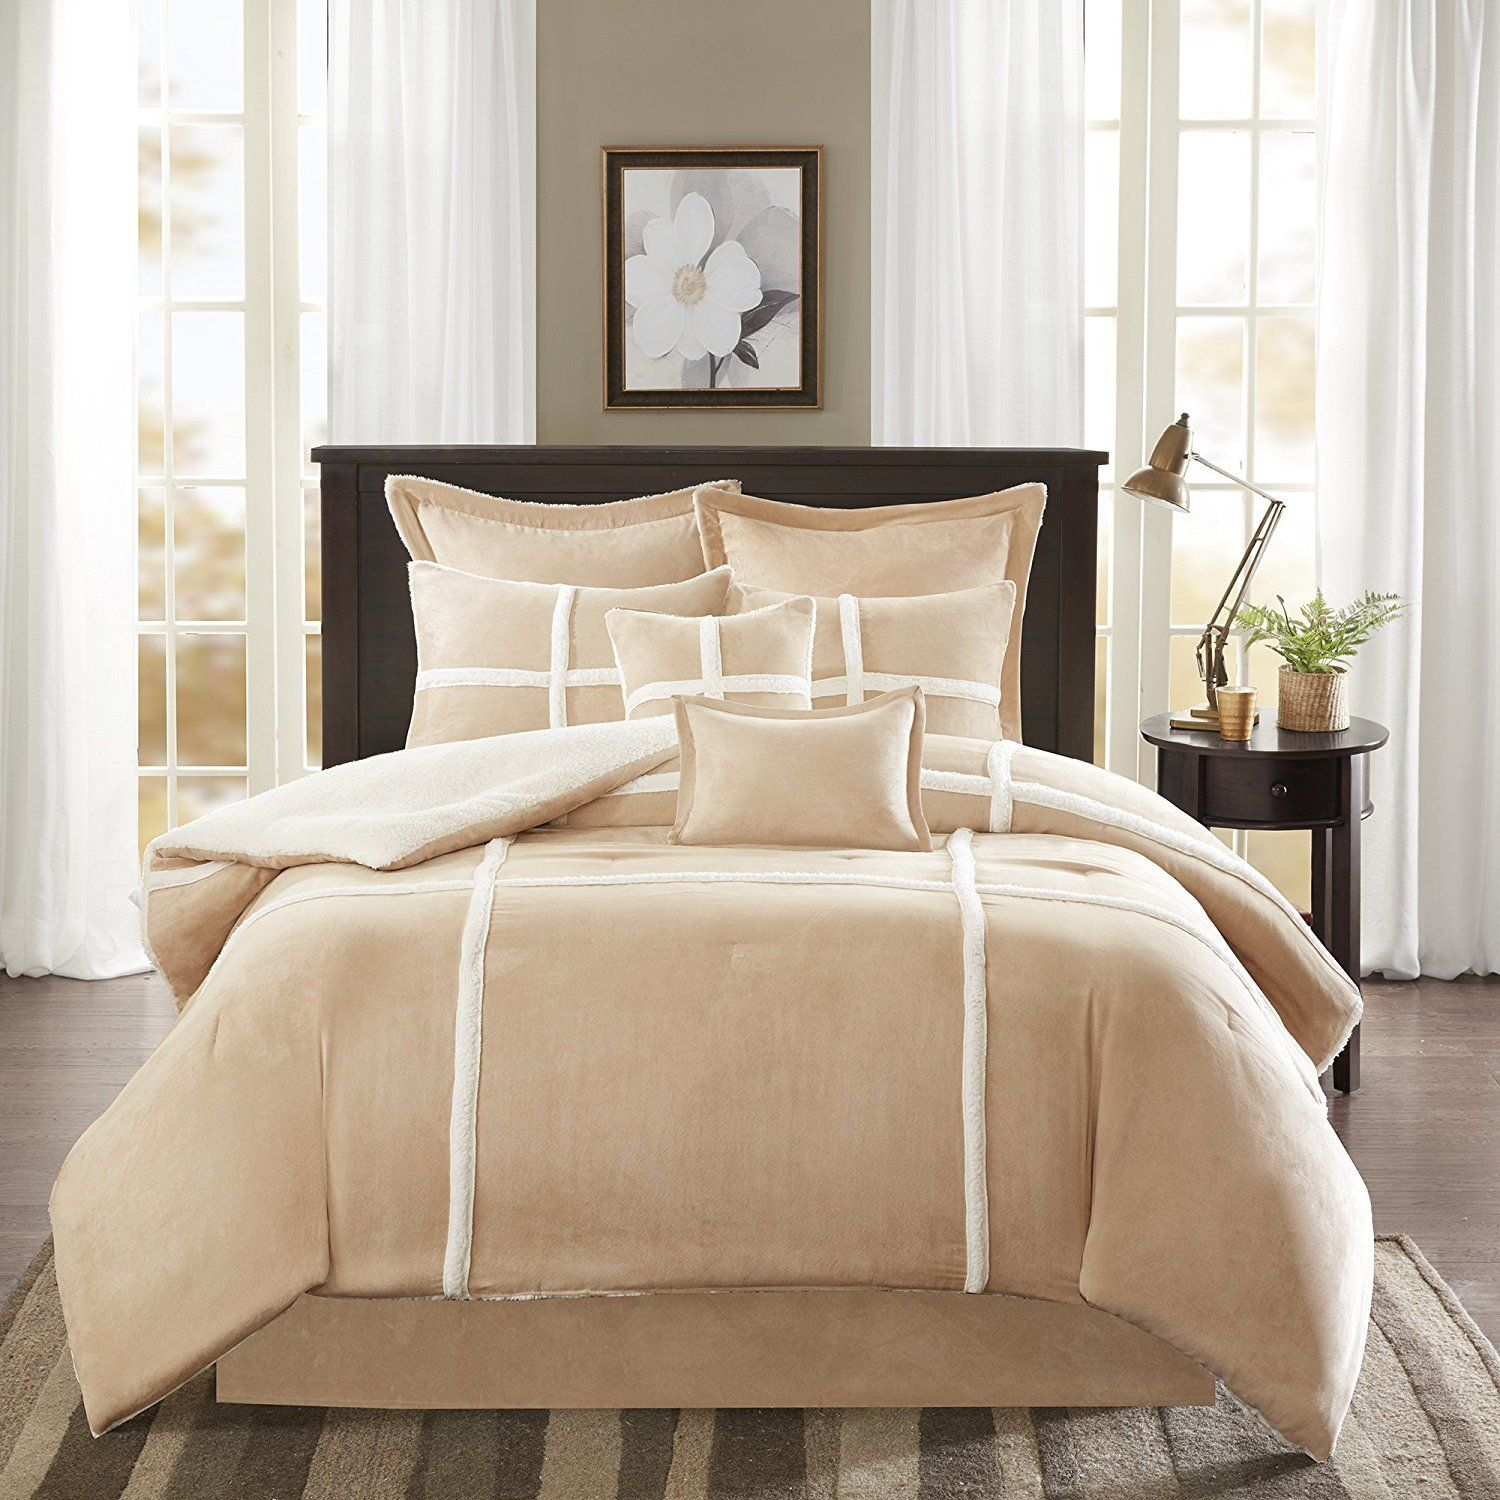 blue by absolute zero comforters comforter solid product makeitcolorful color